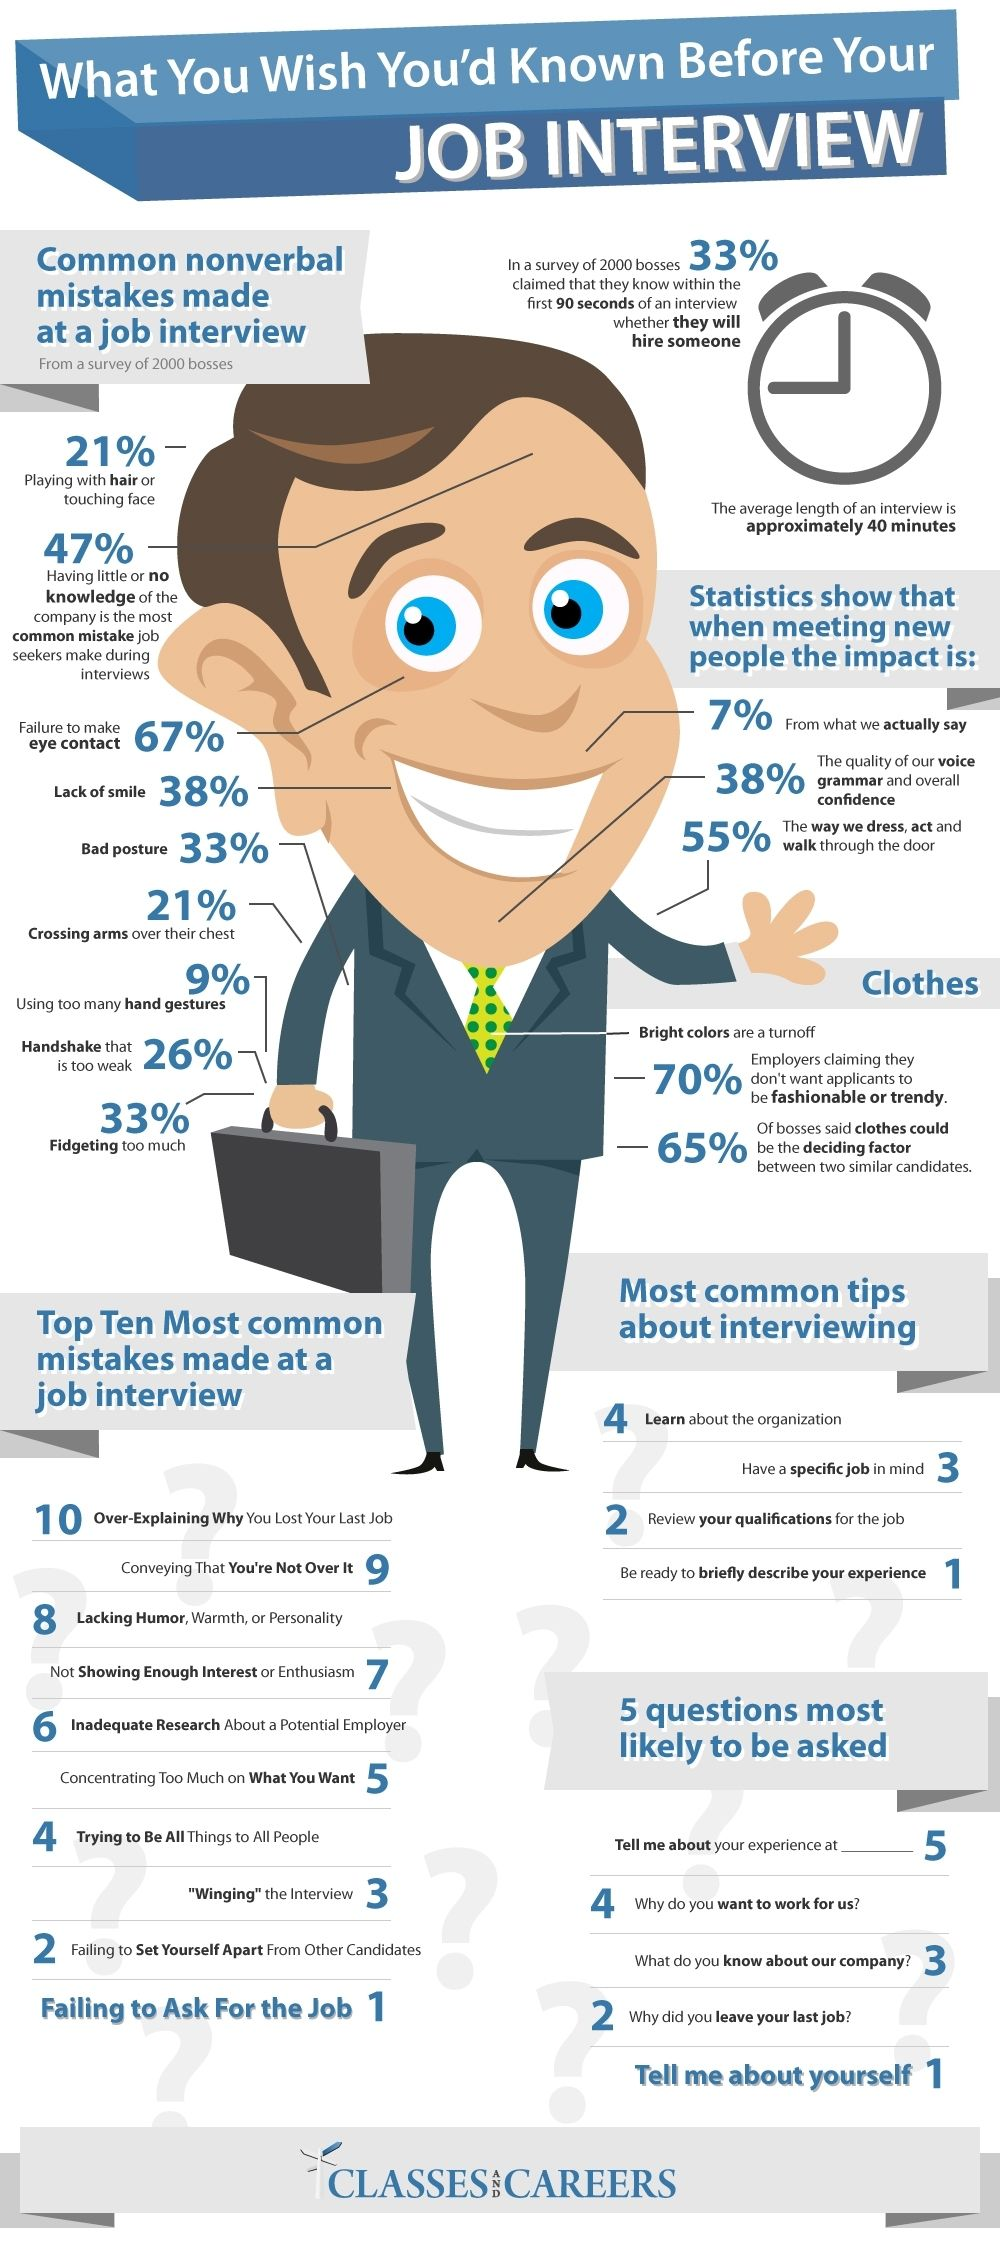 things to know before your job interview infographic interview job interviews